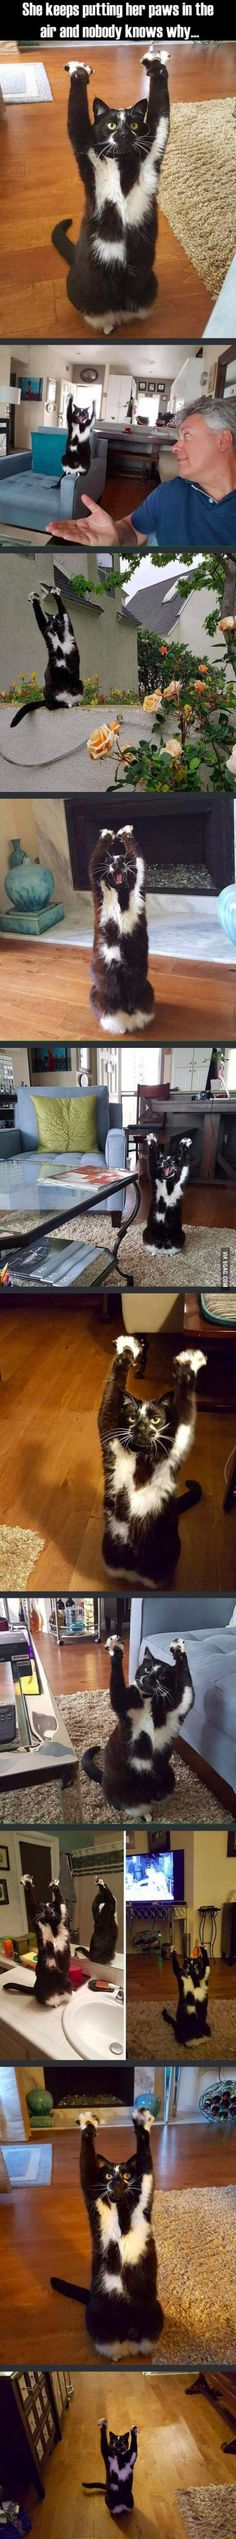 Haha, we can only begin to guess #funny #pet